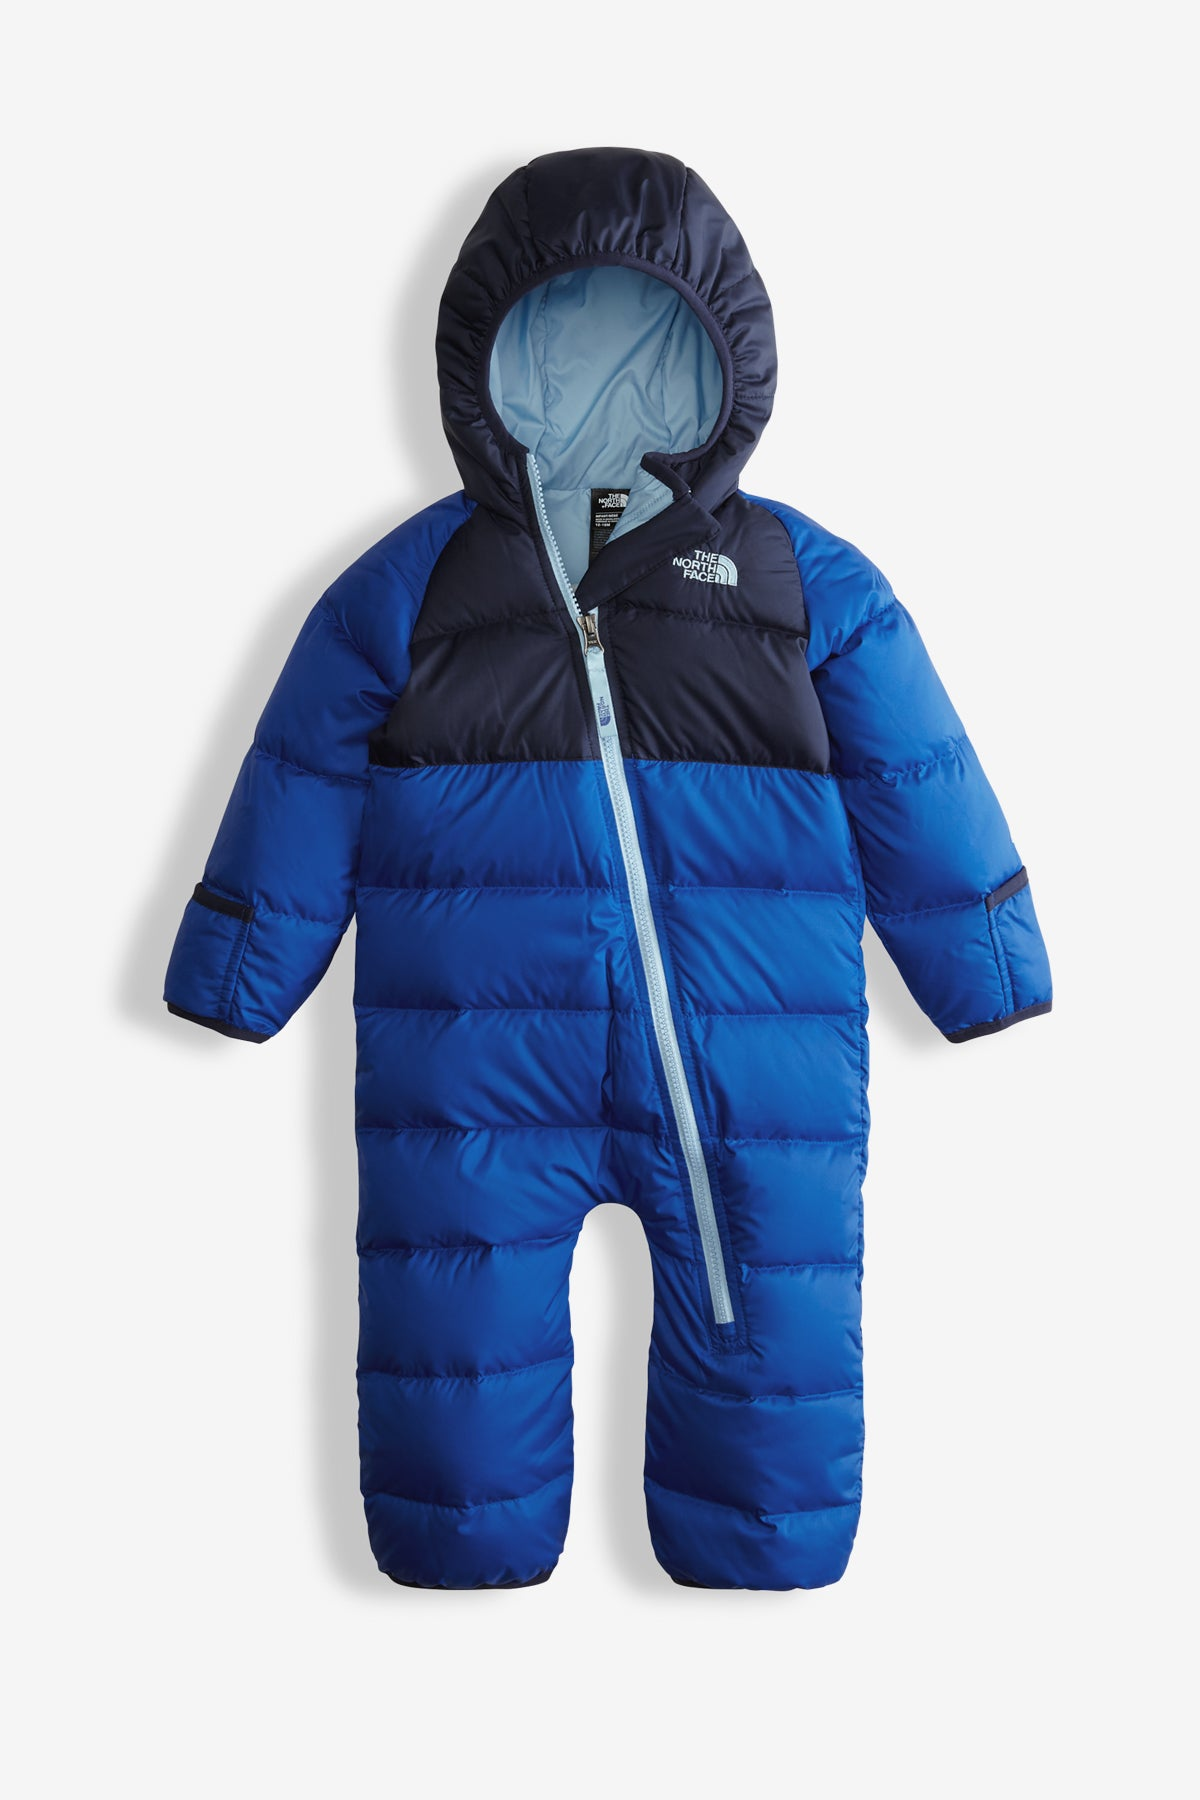 072efbb13dd4 The North Face Infant Lil  Snuggler Down Suit - Bright Cobalt Blue ...